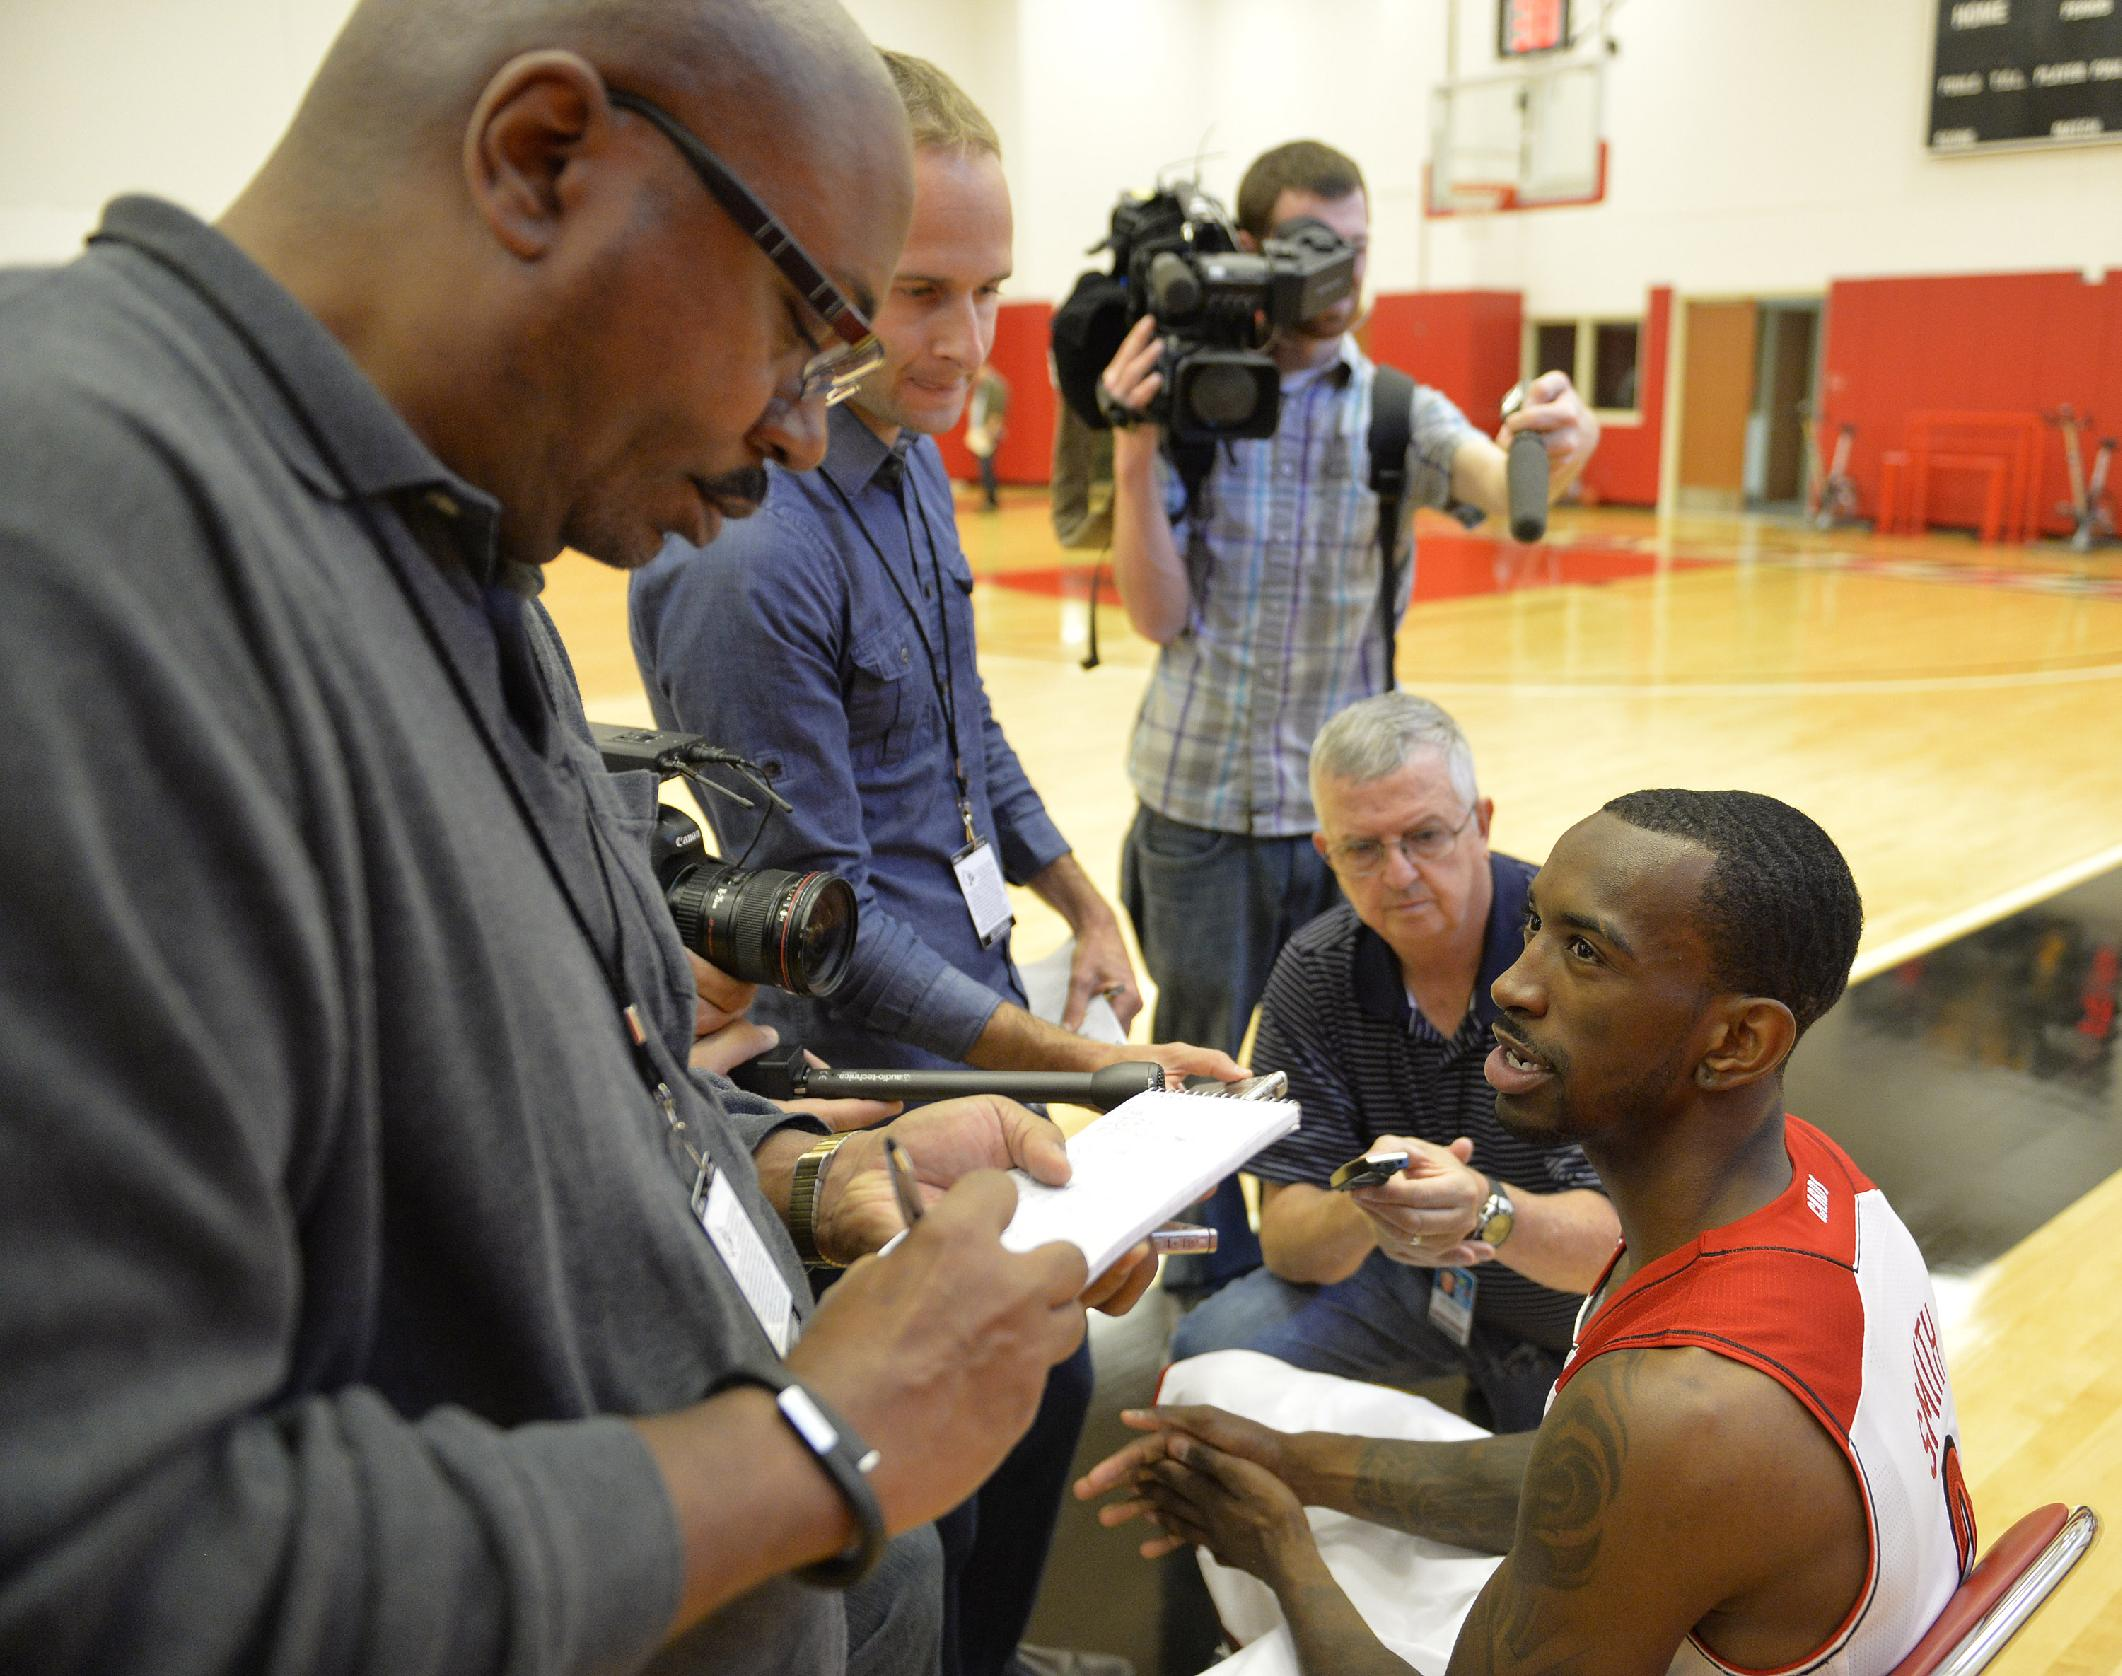 Louisville's Russ Smith, right, answers a reporter's question during NCAA college basketball media day, Saturday, Oct. 12, 2013, in Louisville, Ky